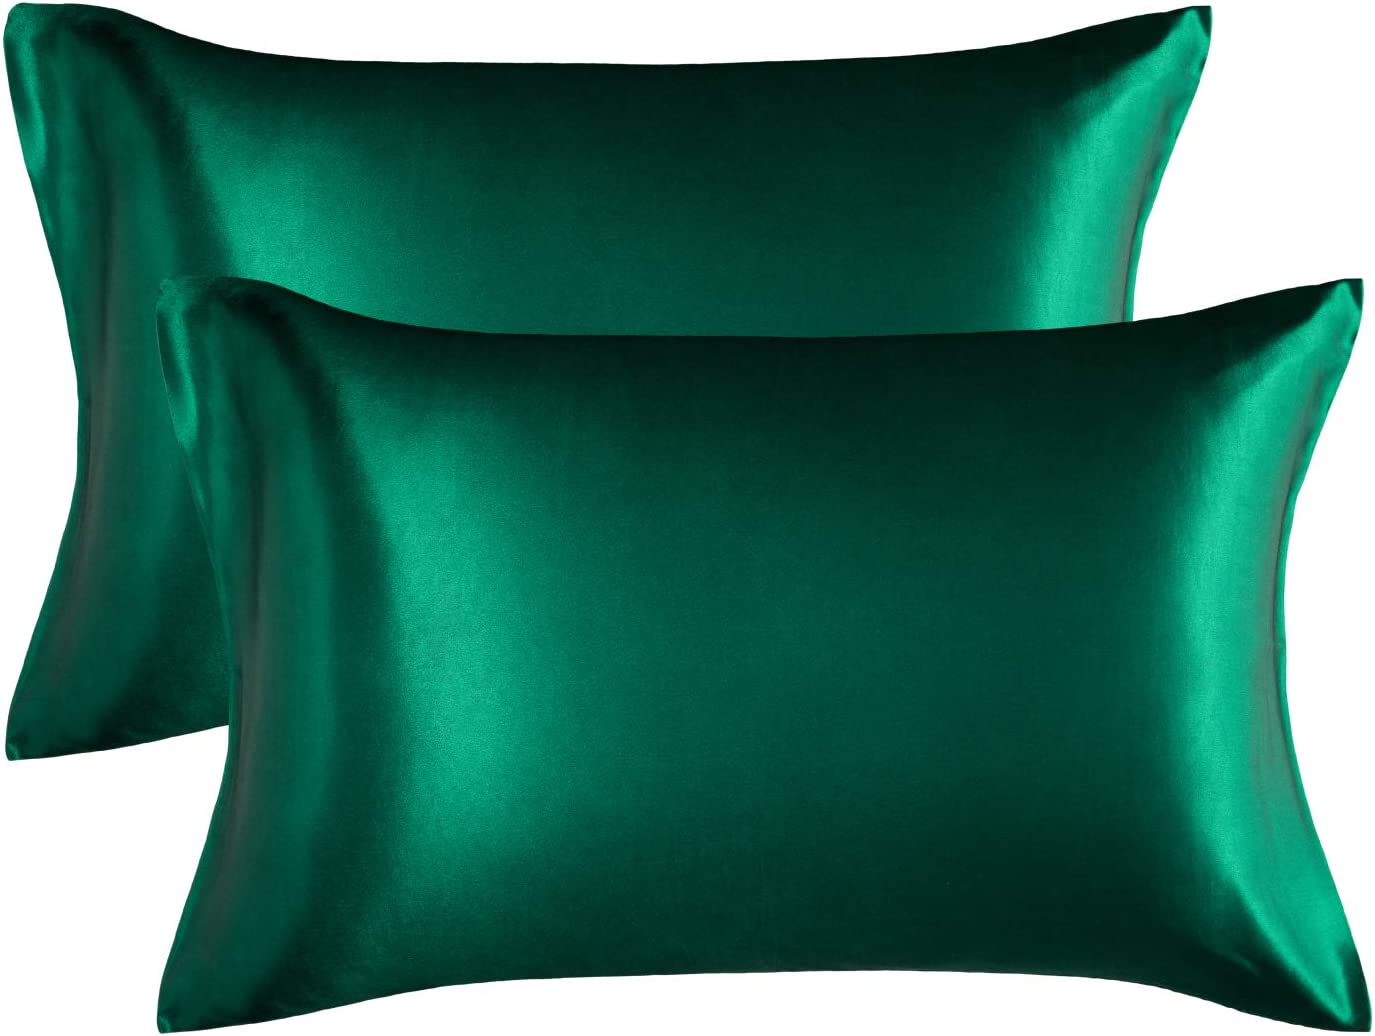 Bedsure Satin Pillowcase for Hair and Skin, 2-Pack - Standard Size (20x26 inches) Pillow Cases - Satin Pillow Covers with Envelope Closure, Dark Green